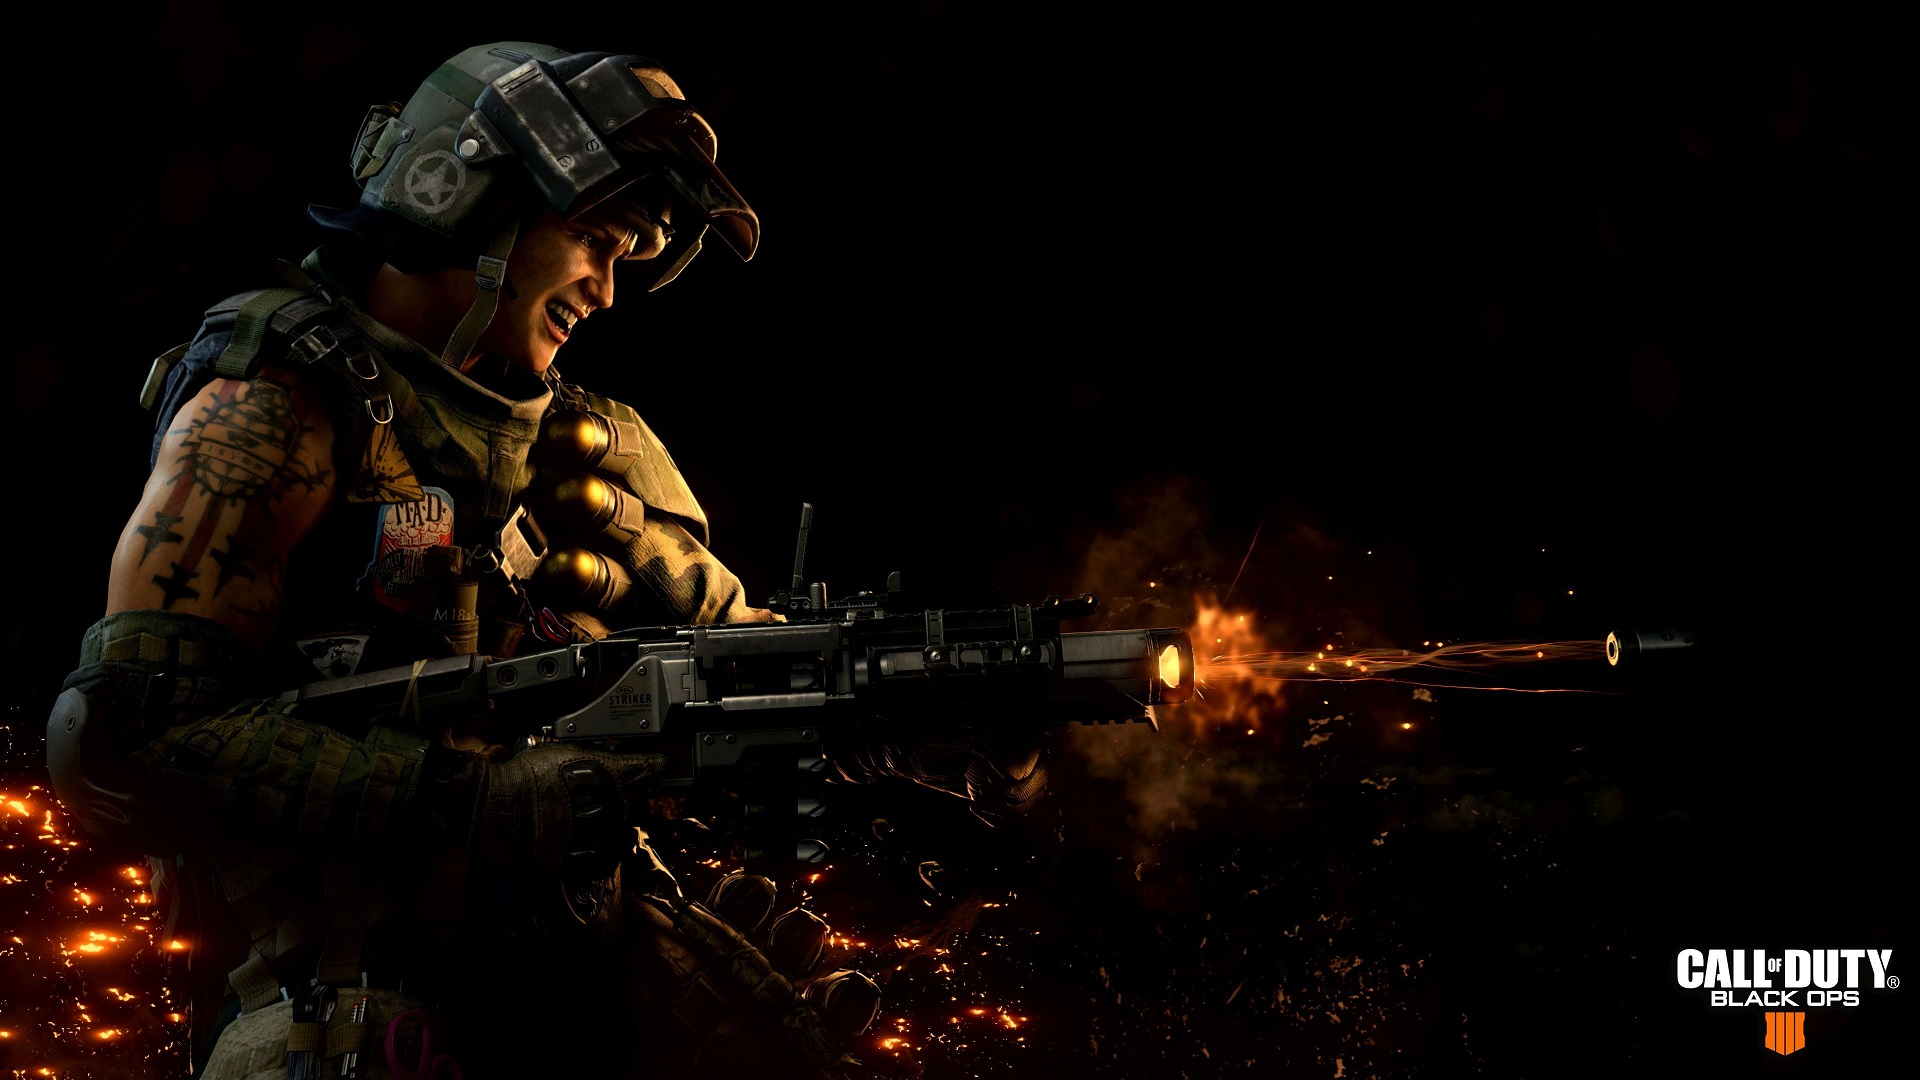 Call Of Duty (COD) Black Ops 4 Wallpapers